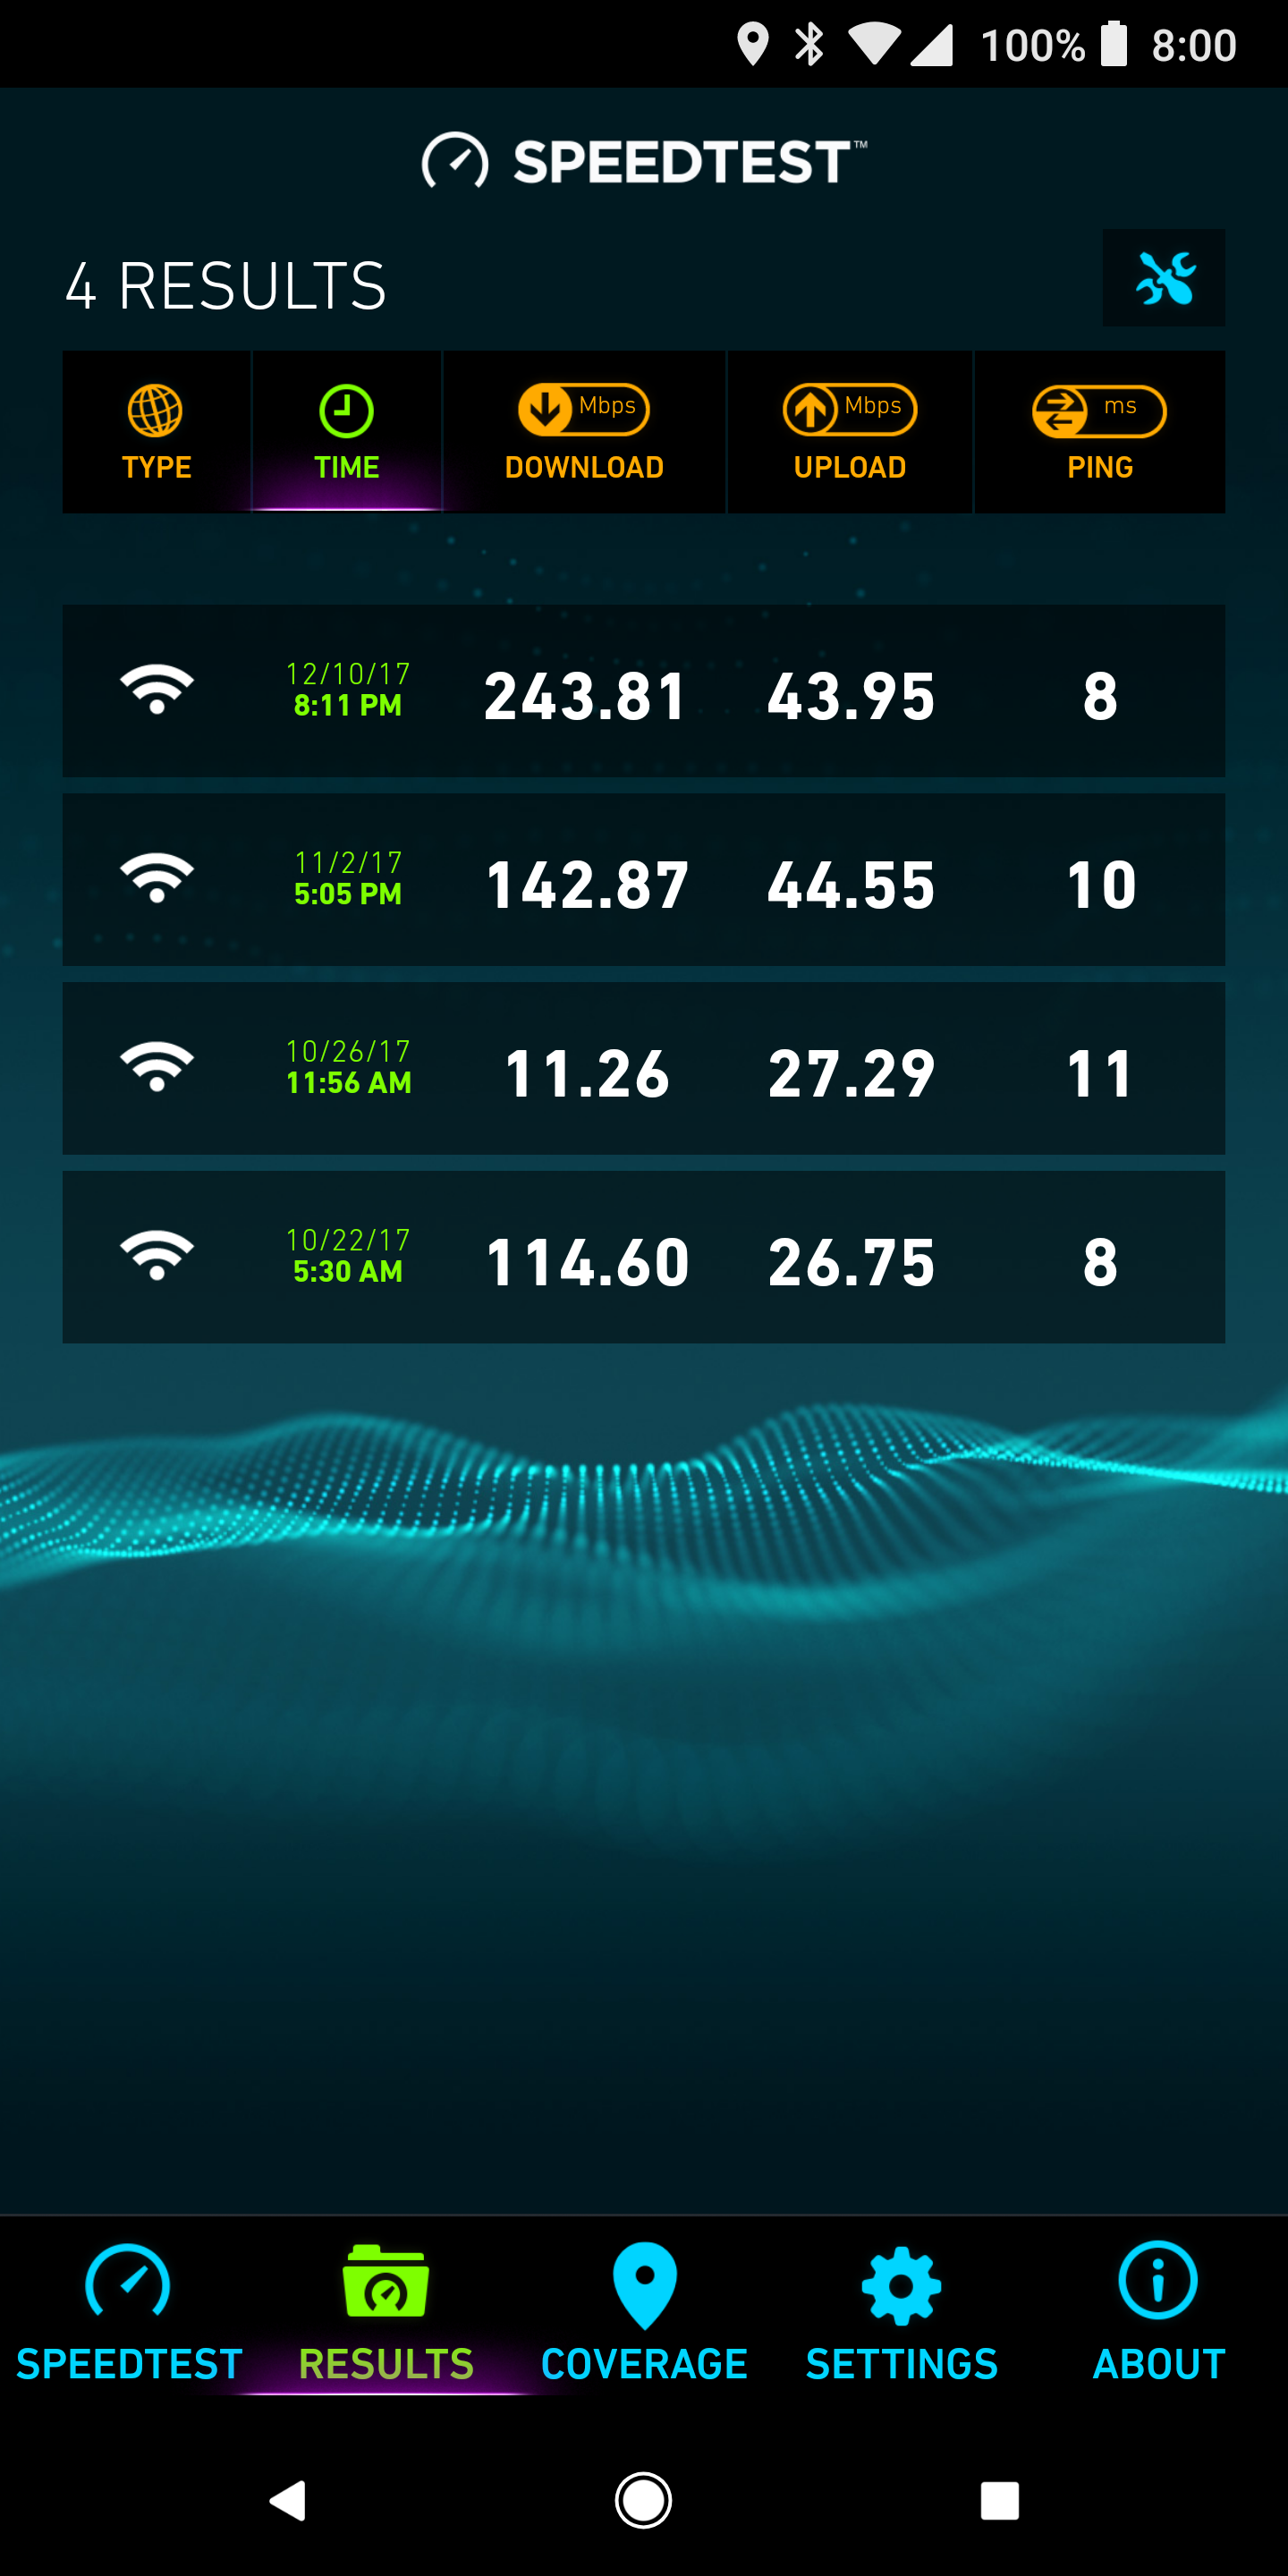 Update: New options too] Speedtest v4 0 rolls out with brand new app